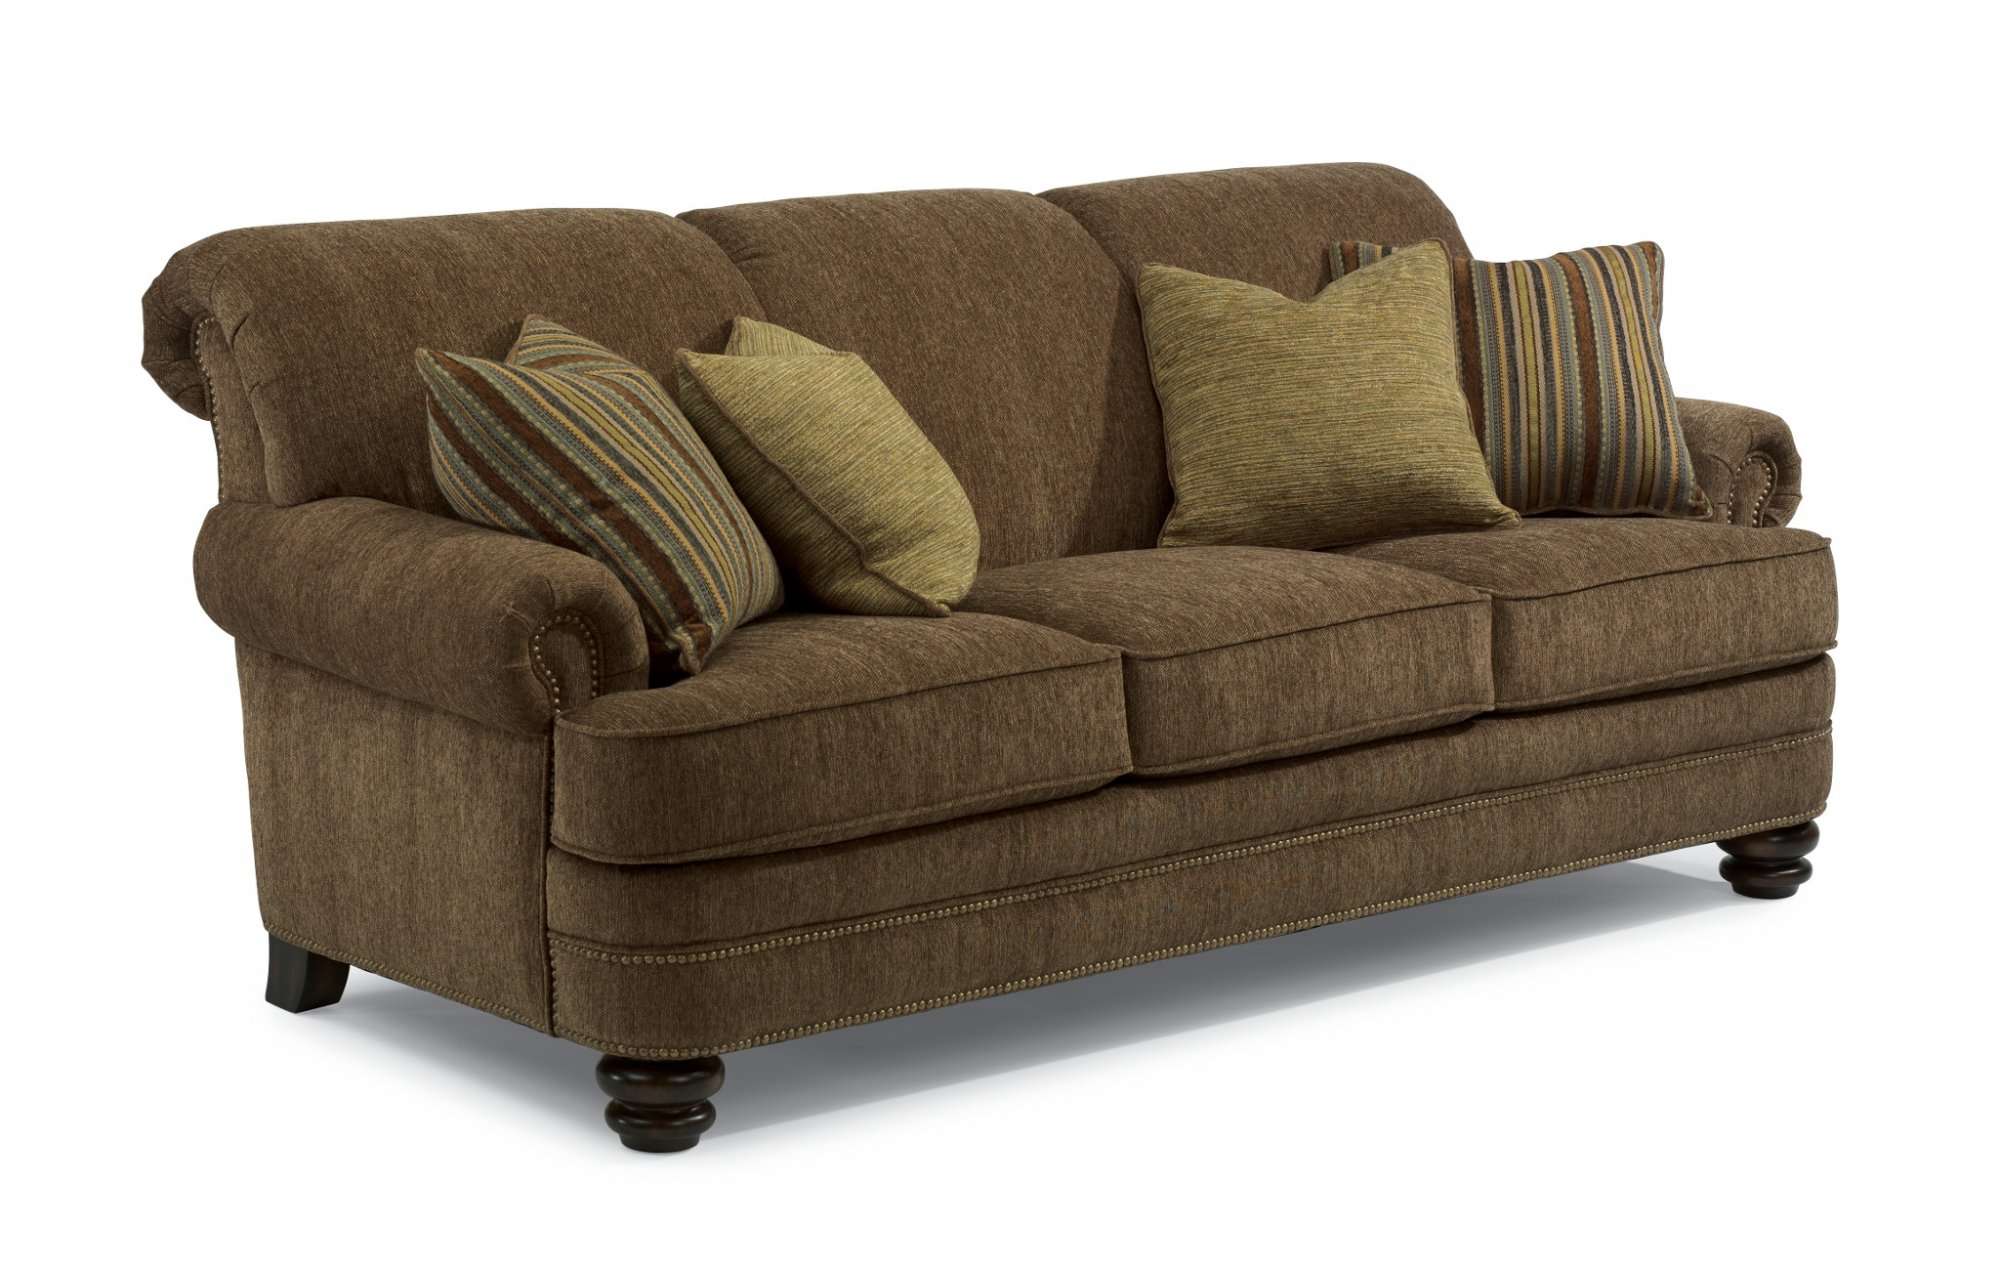 flexsteel sofa share via email download a high-resolution image ZJZMCGH